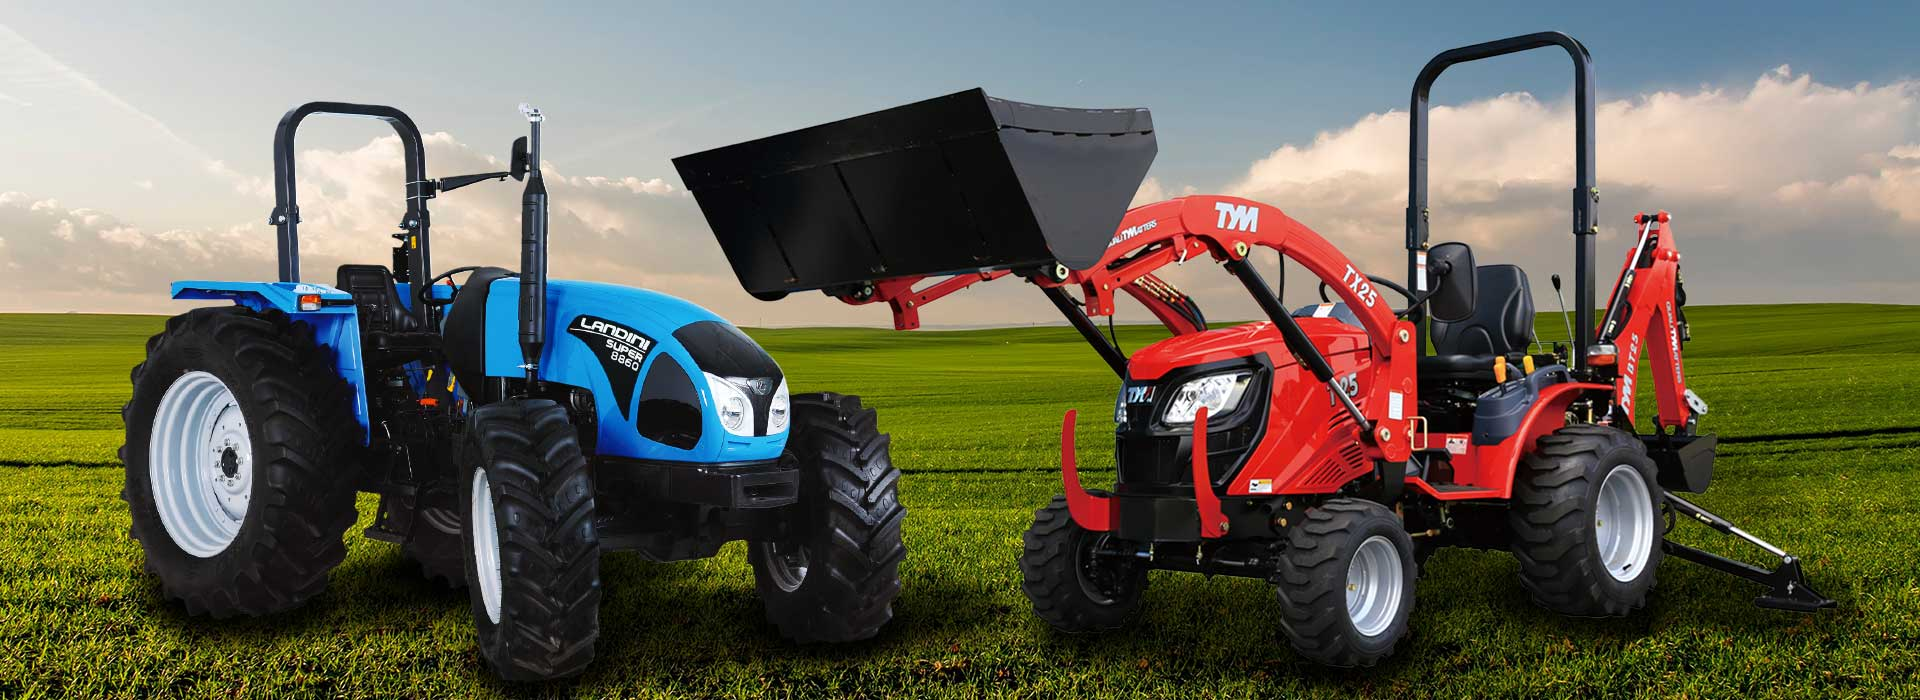 sales banner | TISCA | Tractor Implement Supply Company of Australia